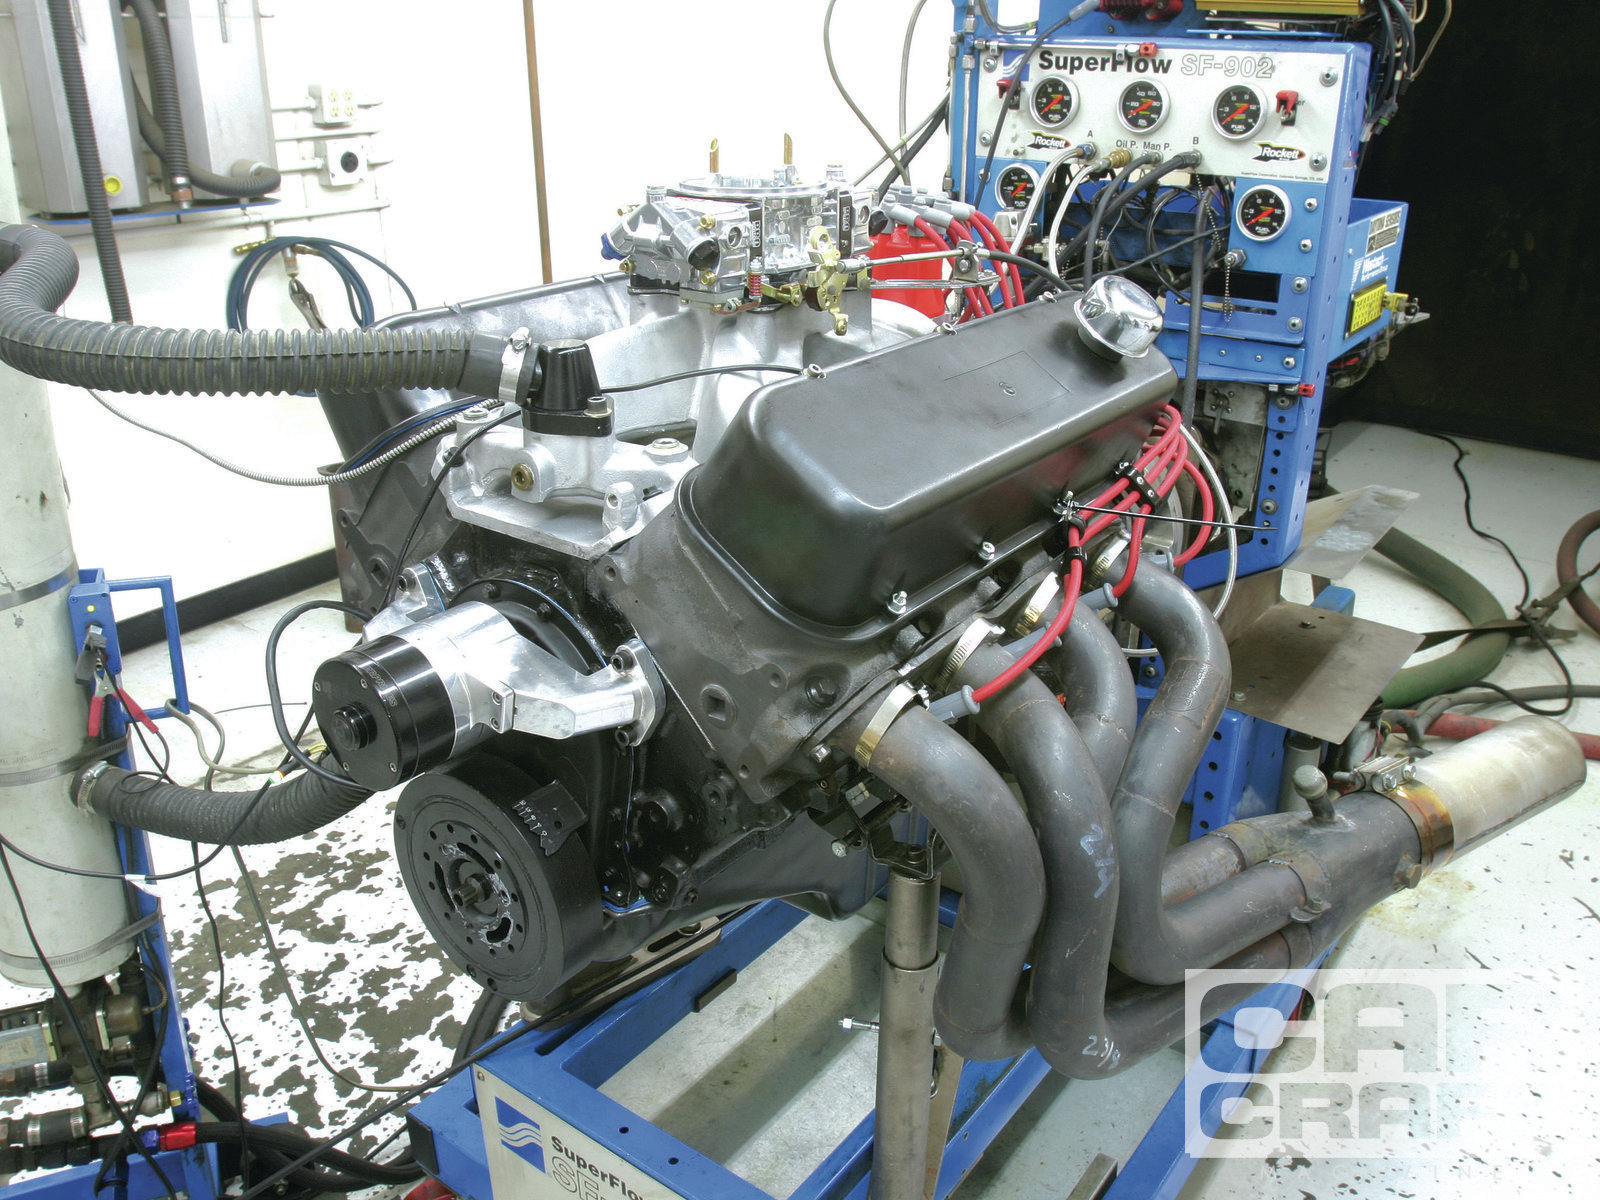 All our dyno tests were performed using a pair of 21⁄8- to 23⁄8-inch stepped headers with no mufflers on Westech's engine dyno. End